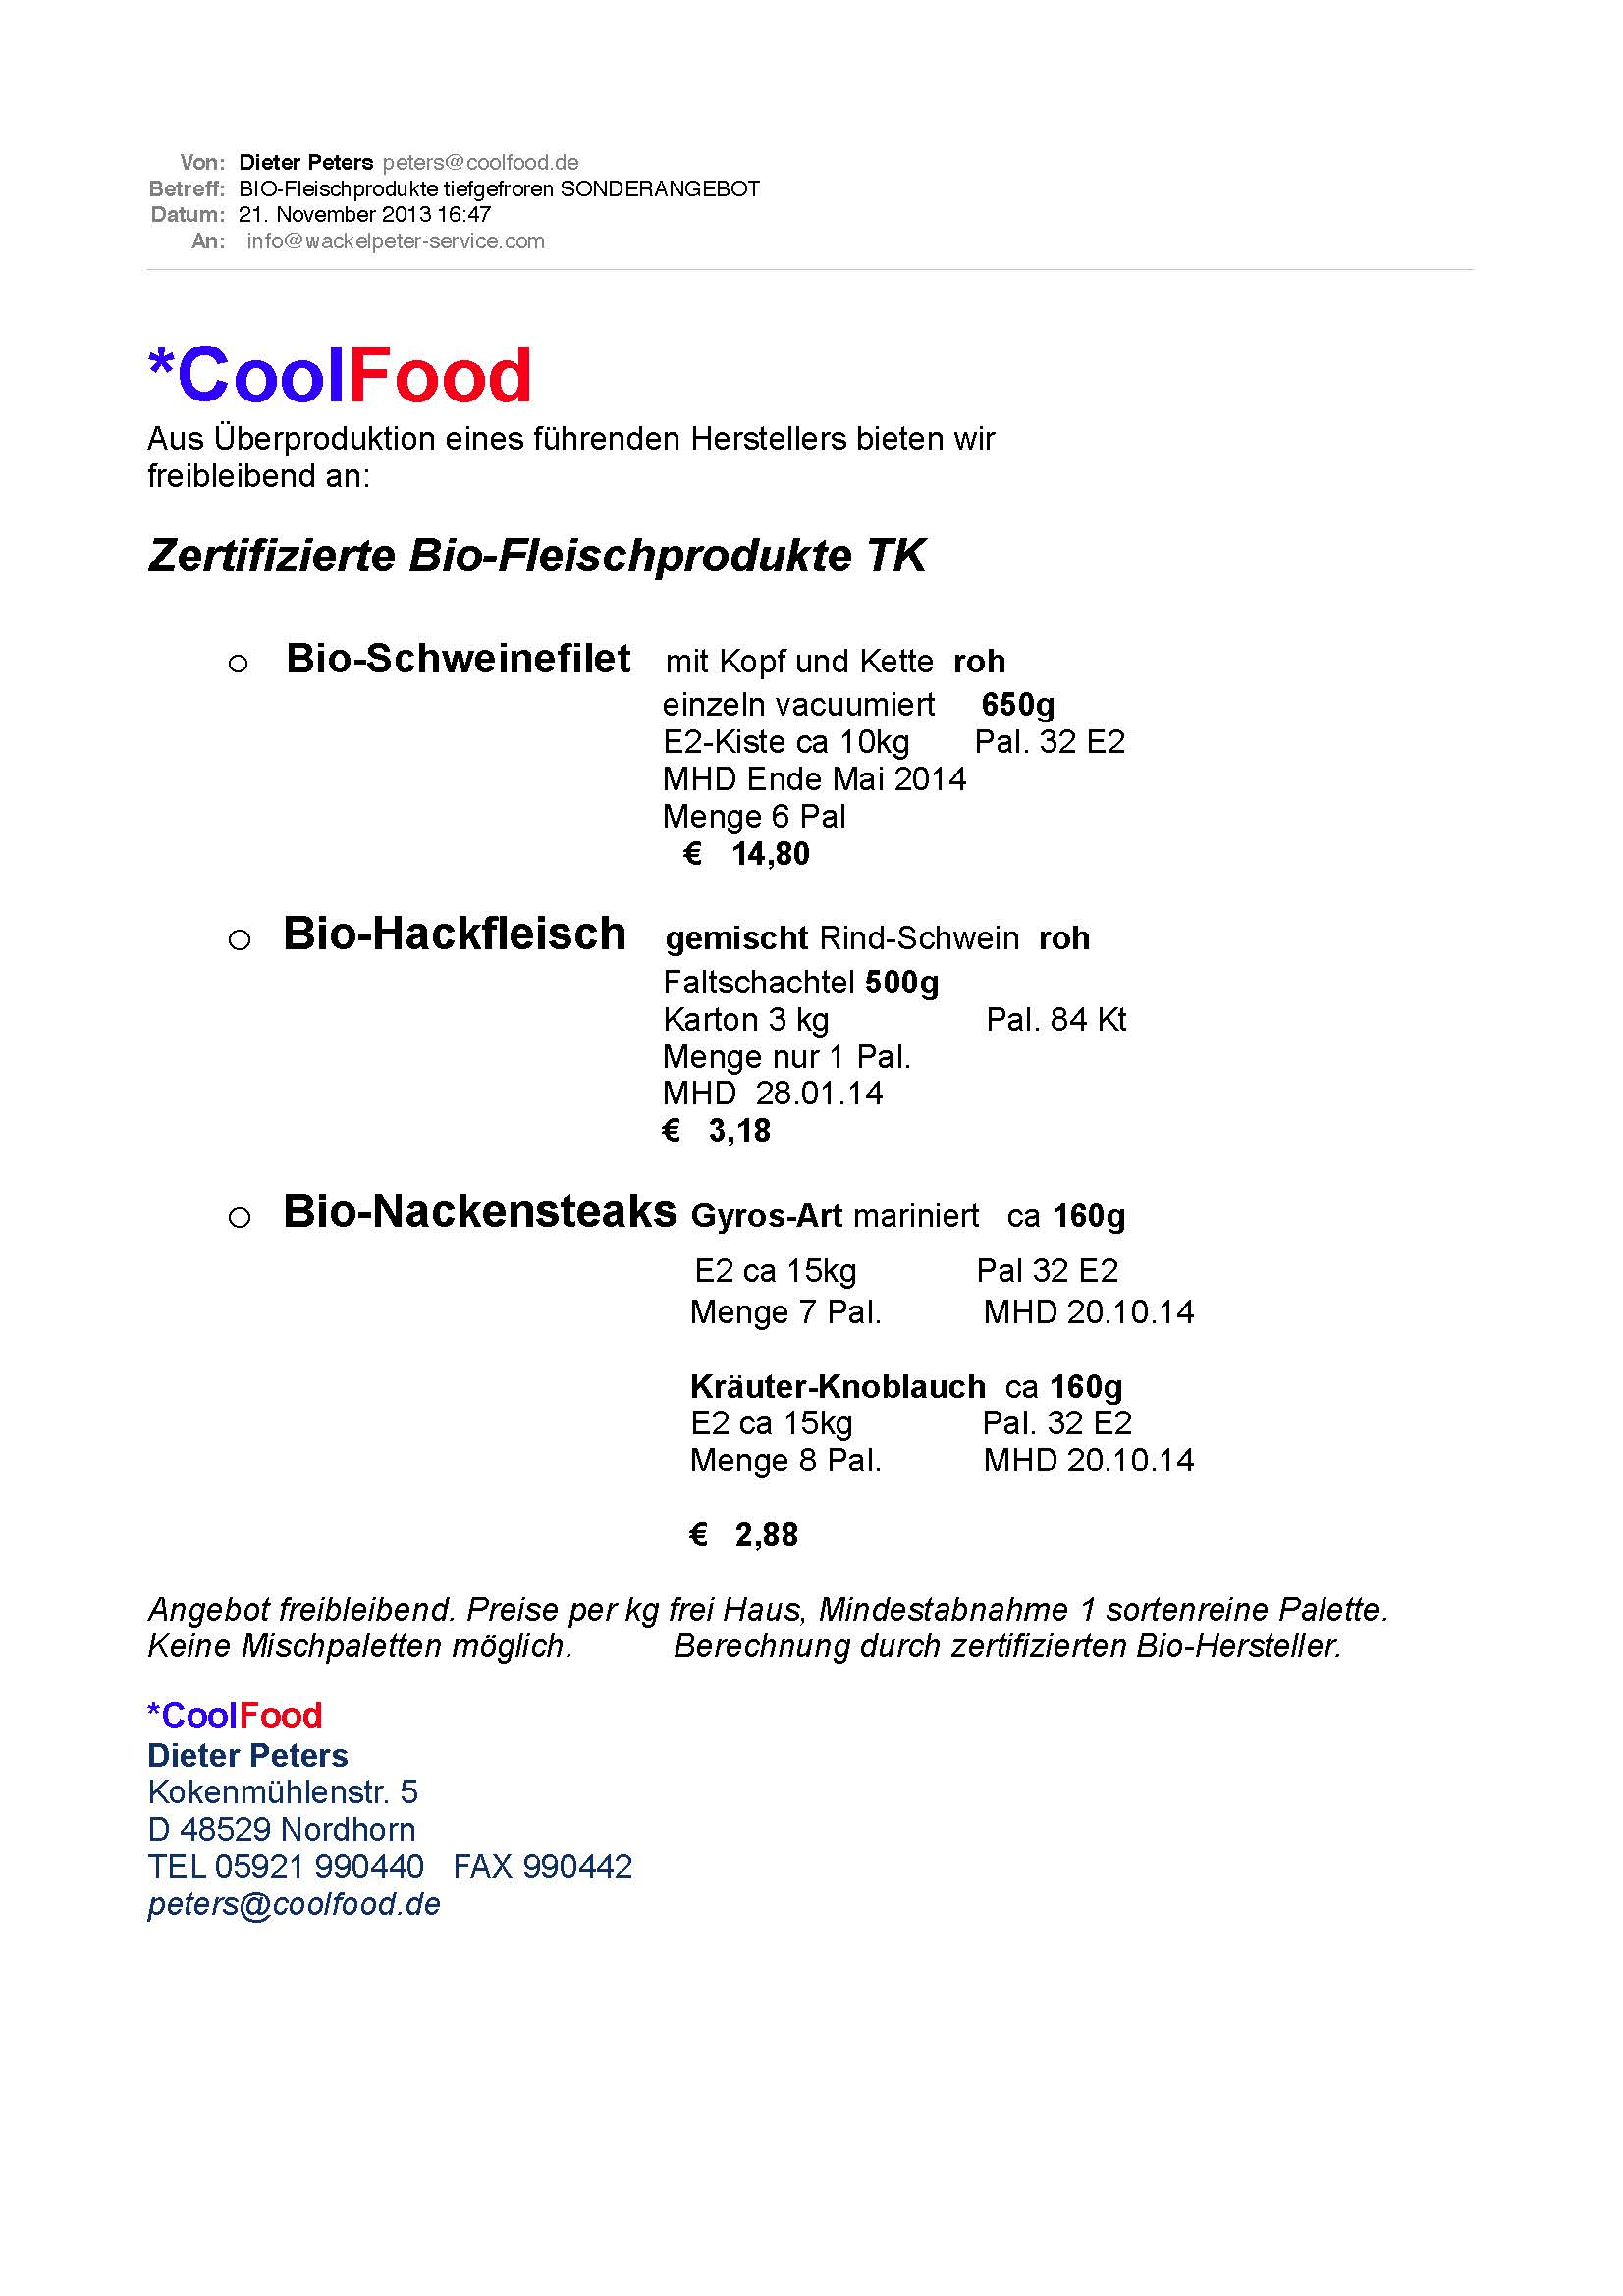 Cool Food Biomentoren